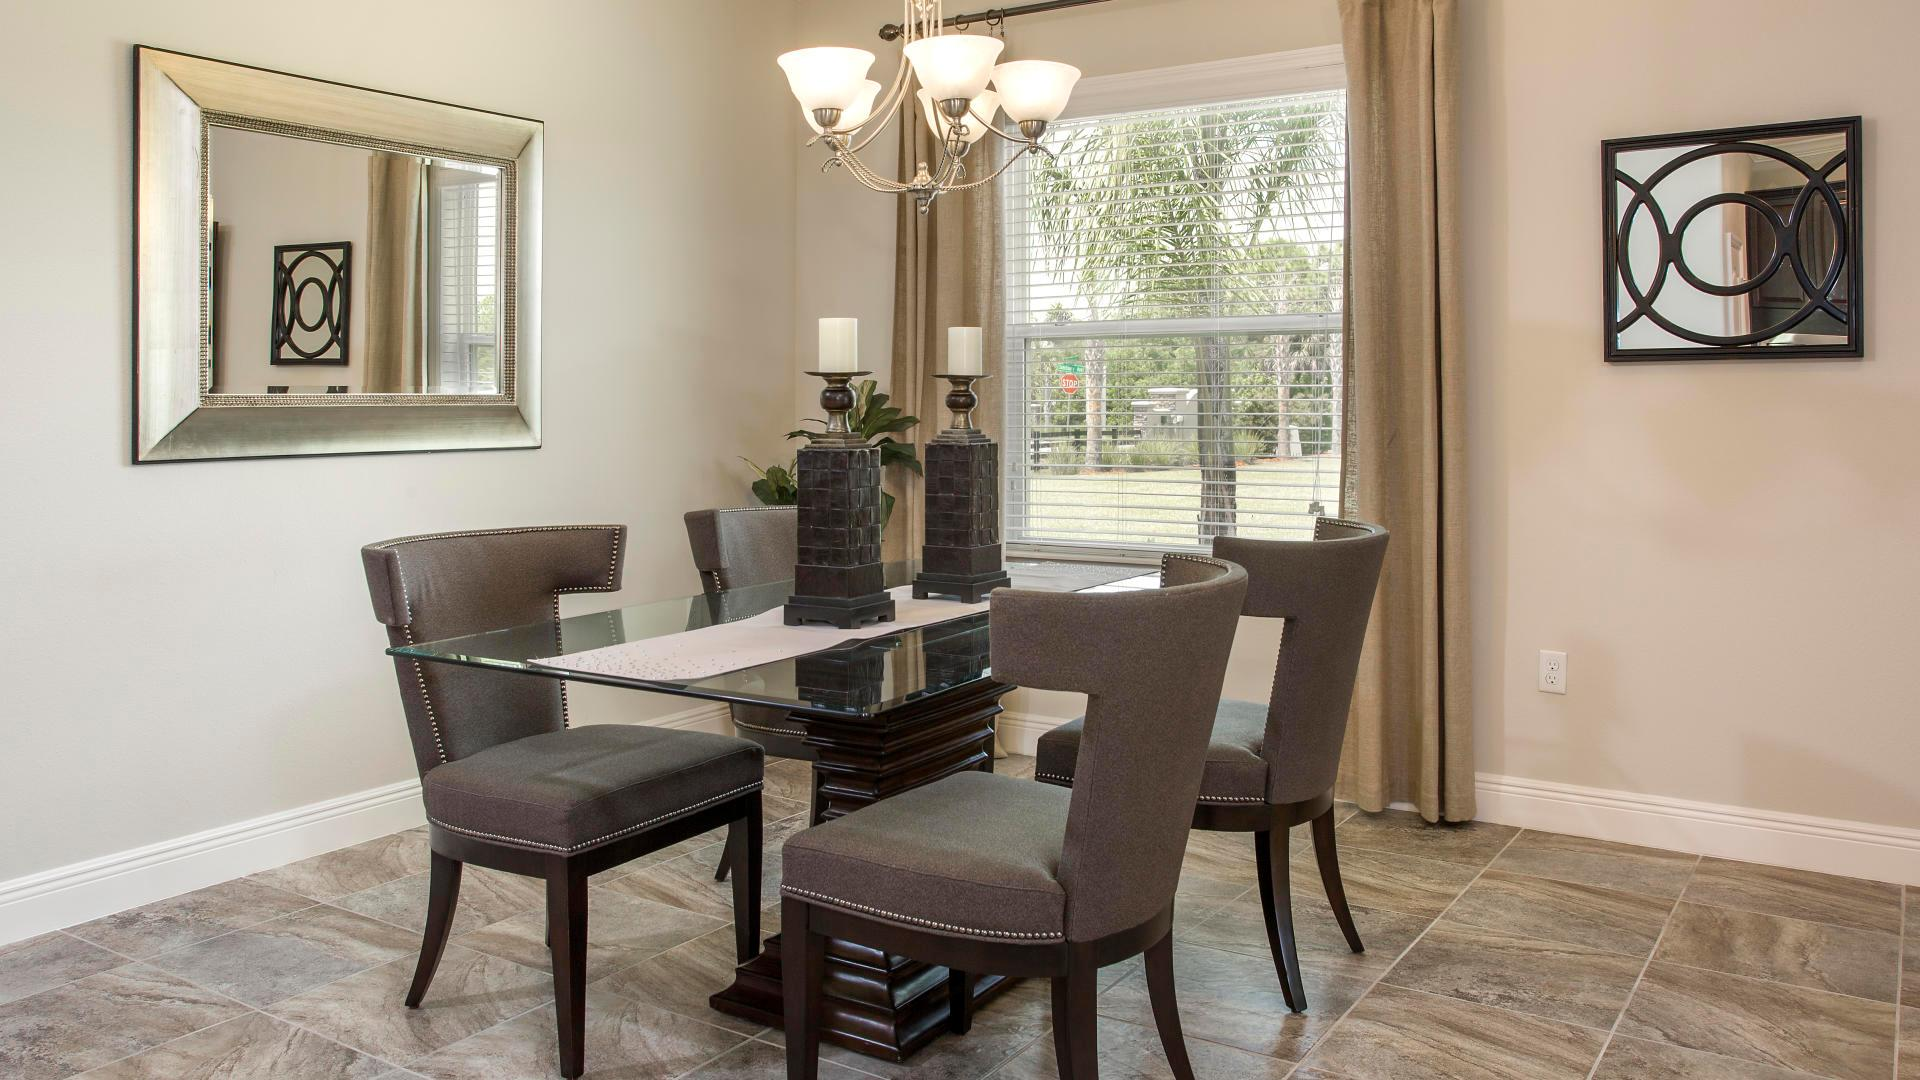 Kitchen featured in the Harmony By Maronda Homes in Jacksonville-St. Augustine, GA